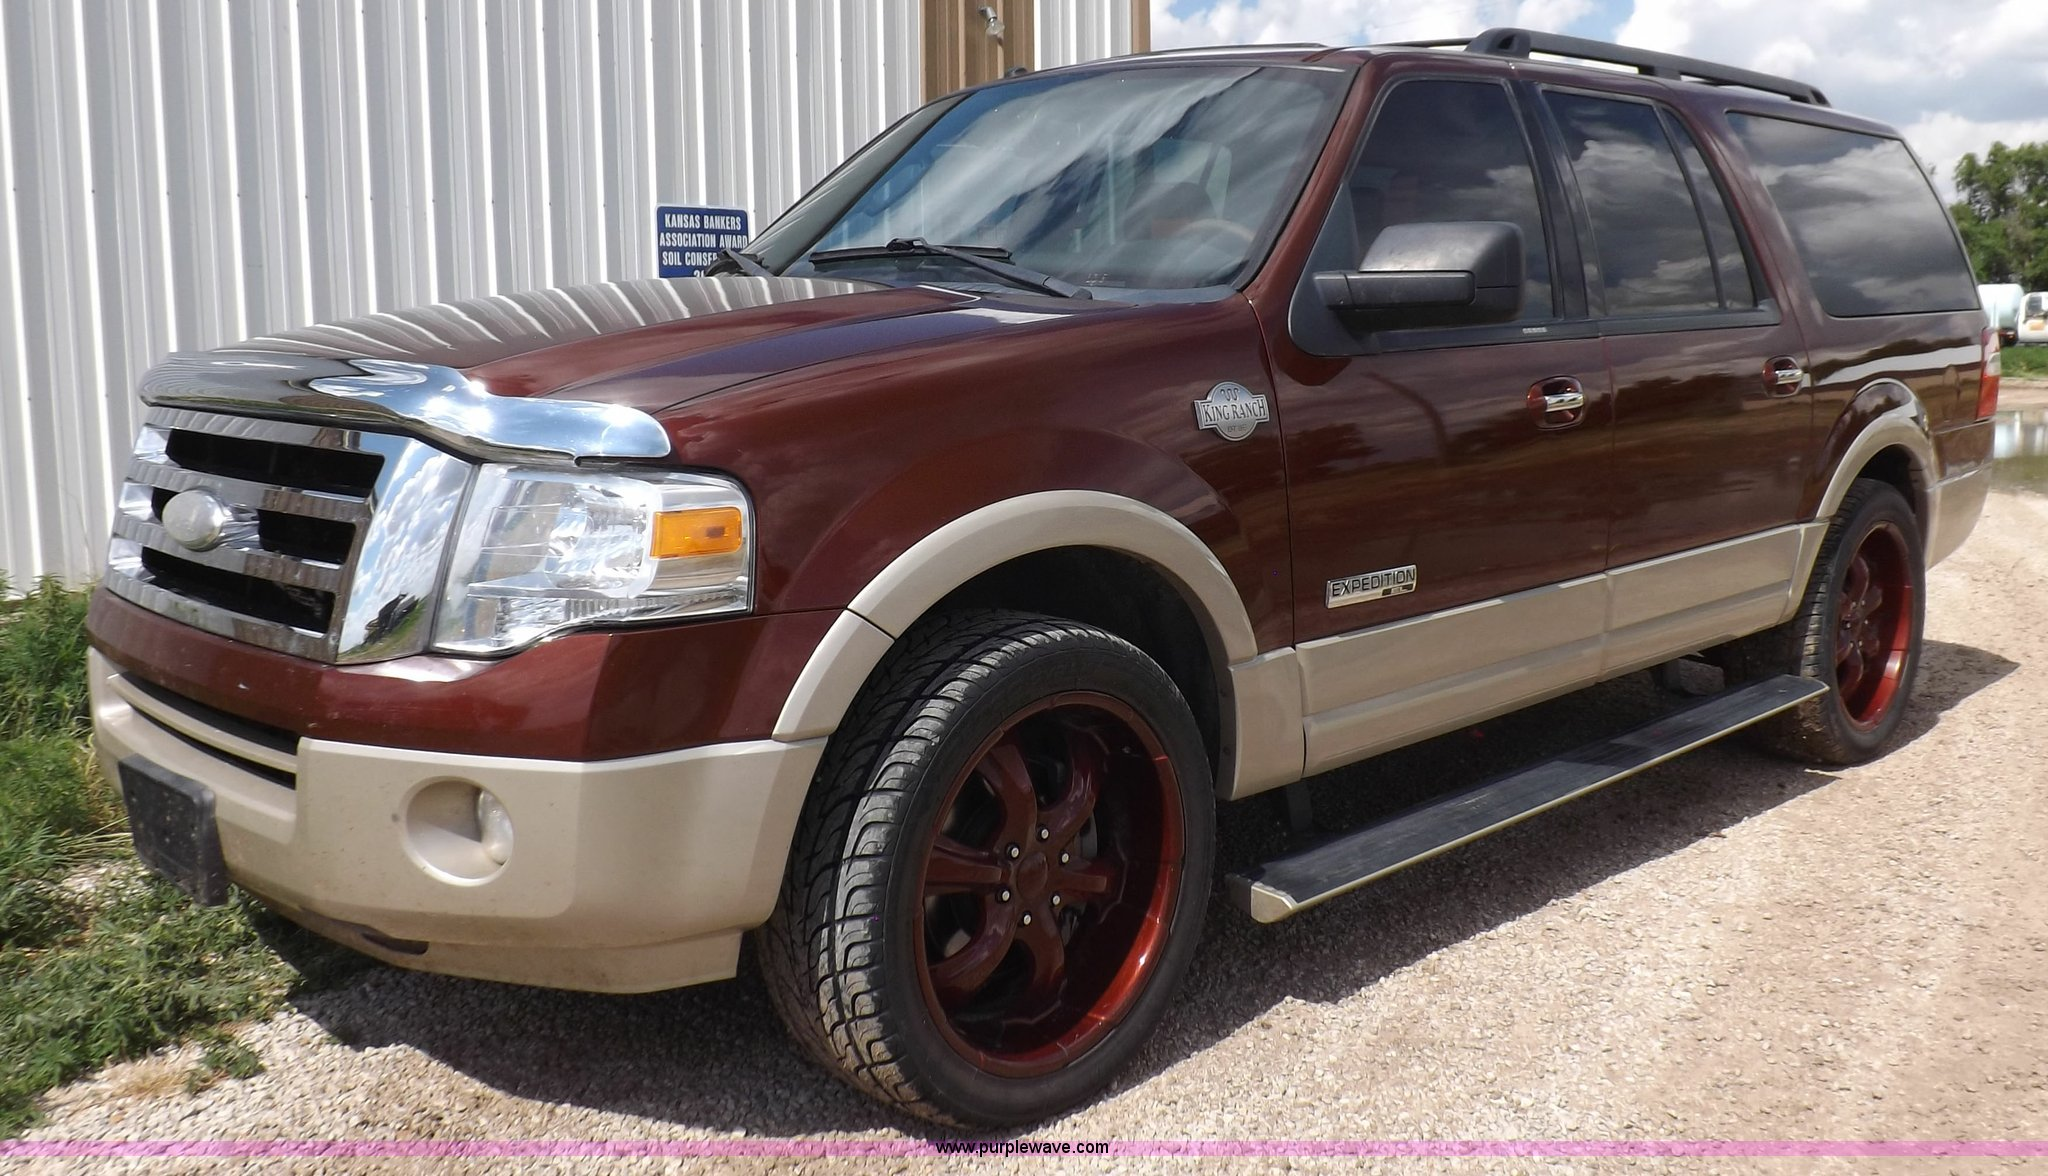 J6998 image for item j6998 2008 ford expedition